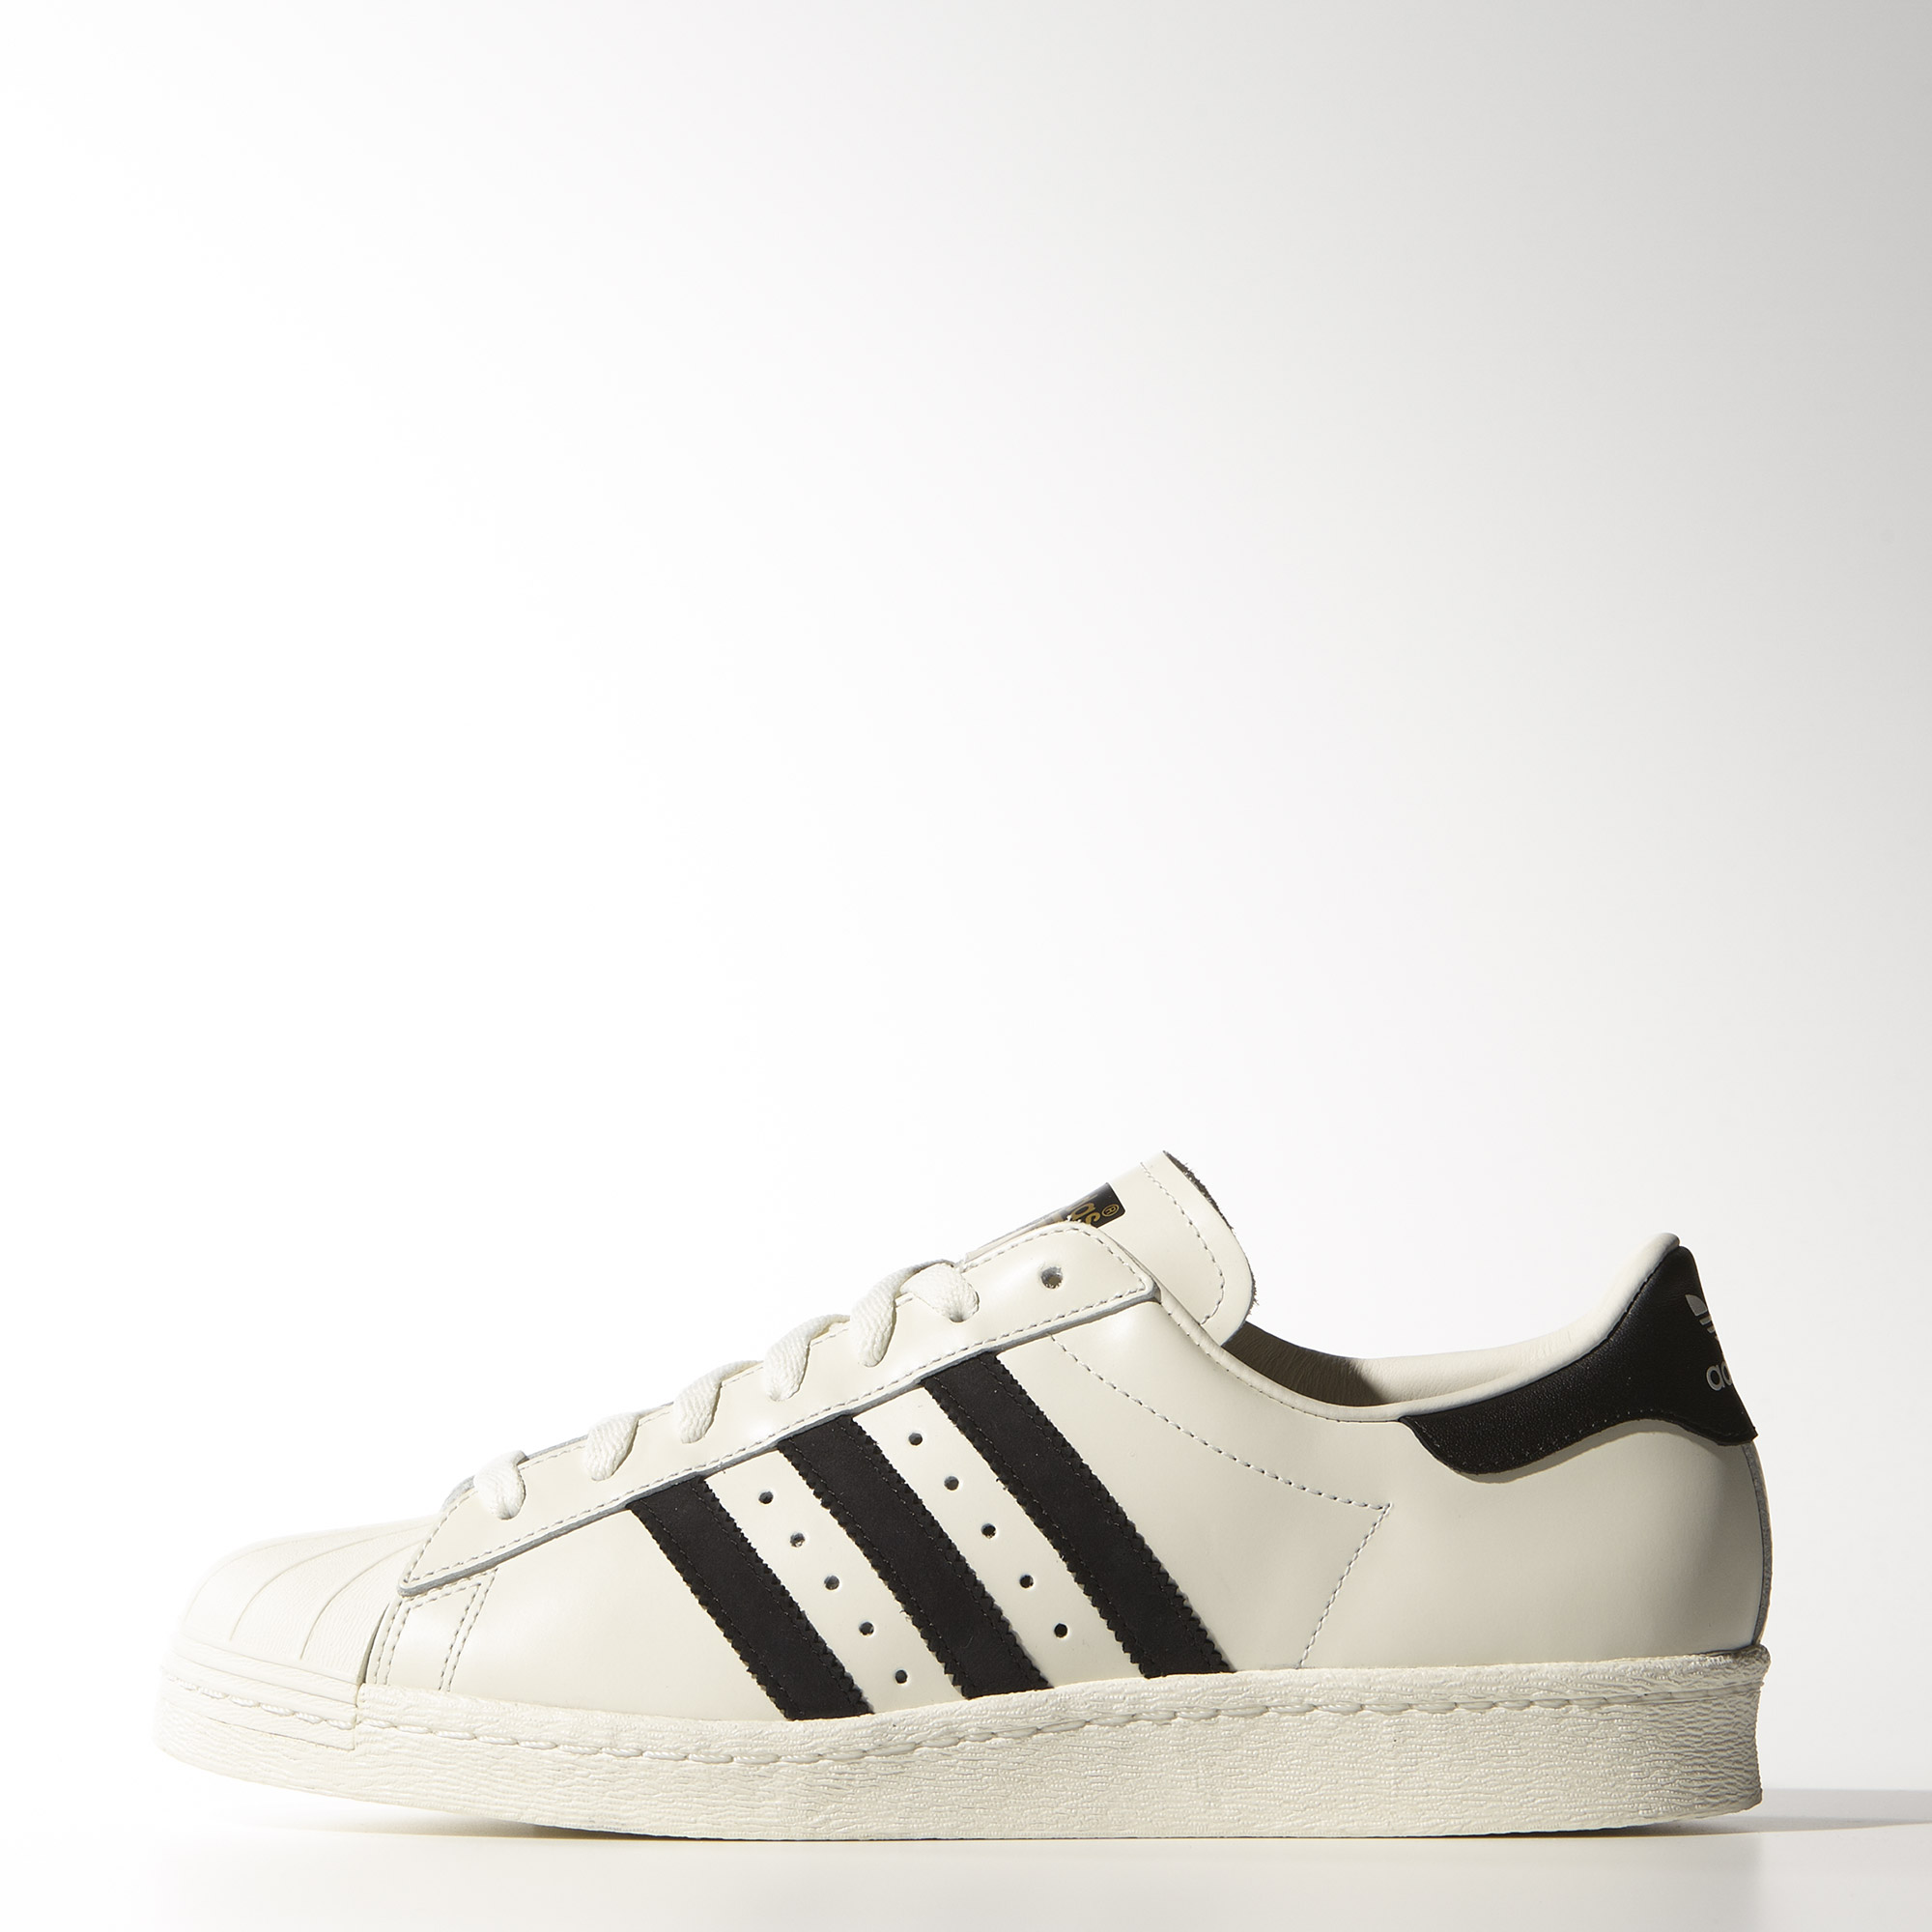 adidas Superstar 80s Vintage Deluxe Shoes | adidas UK